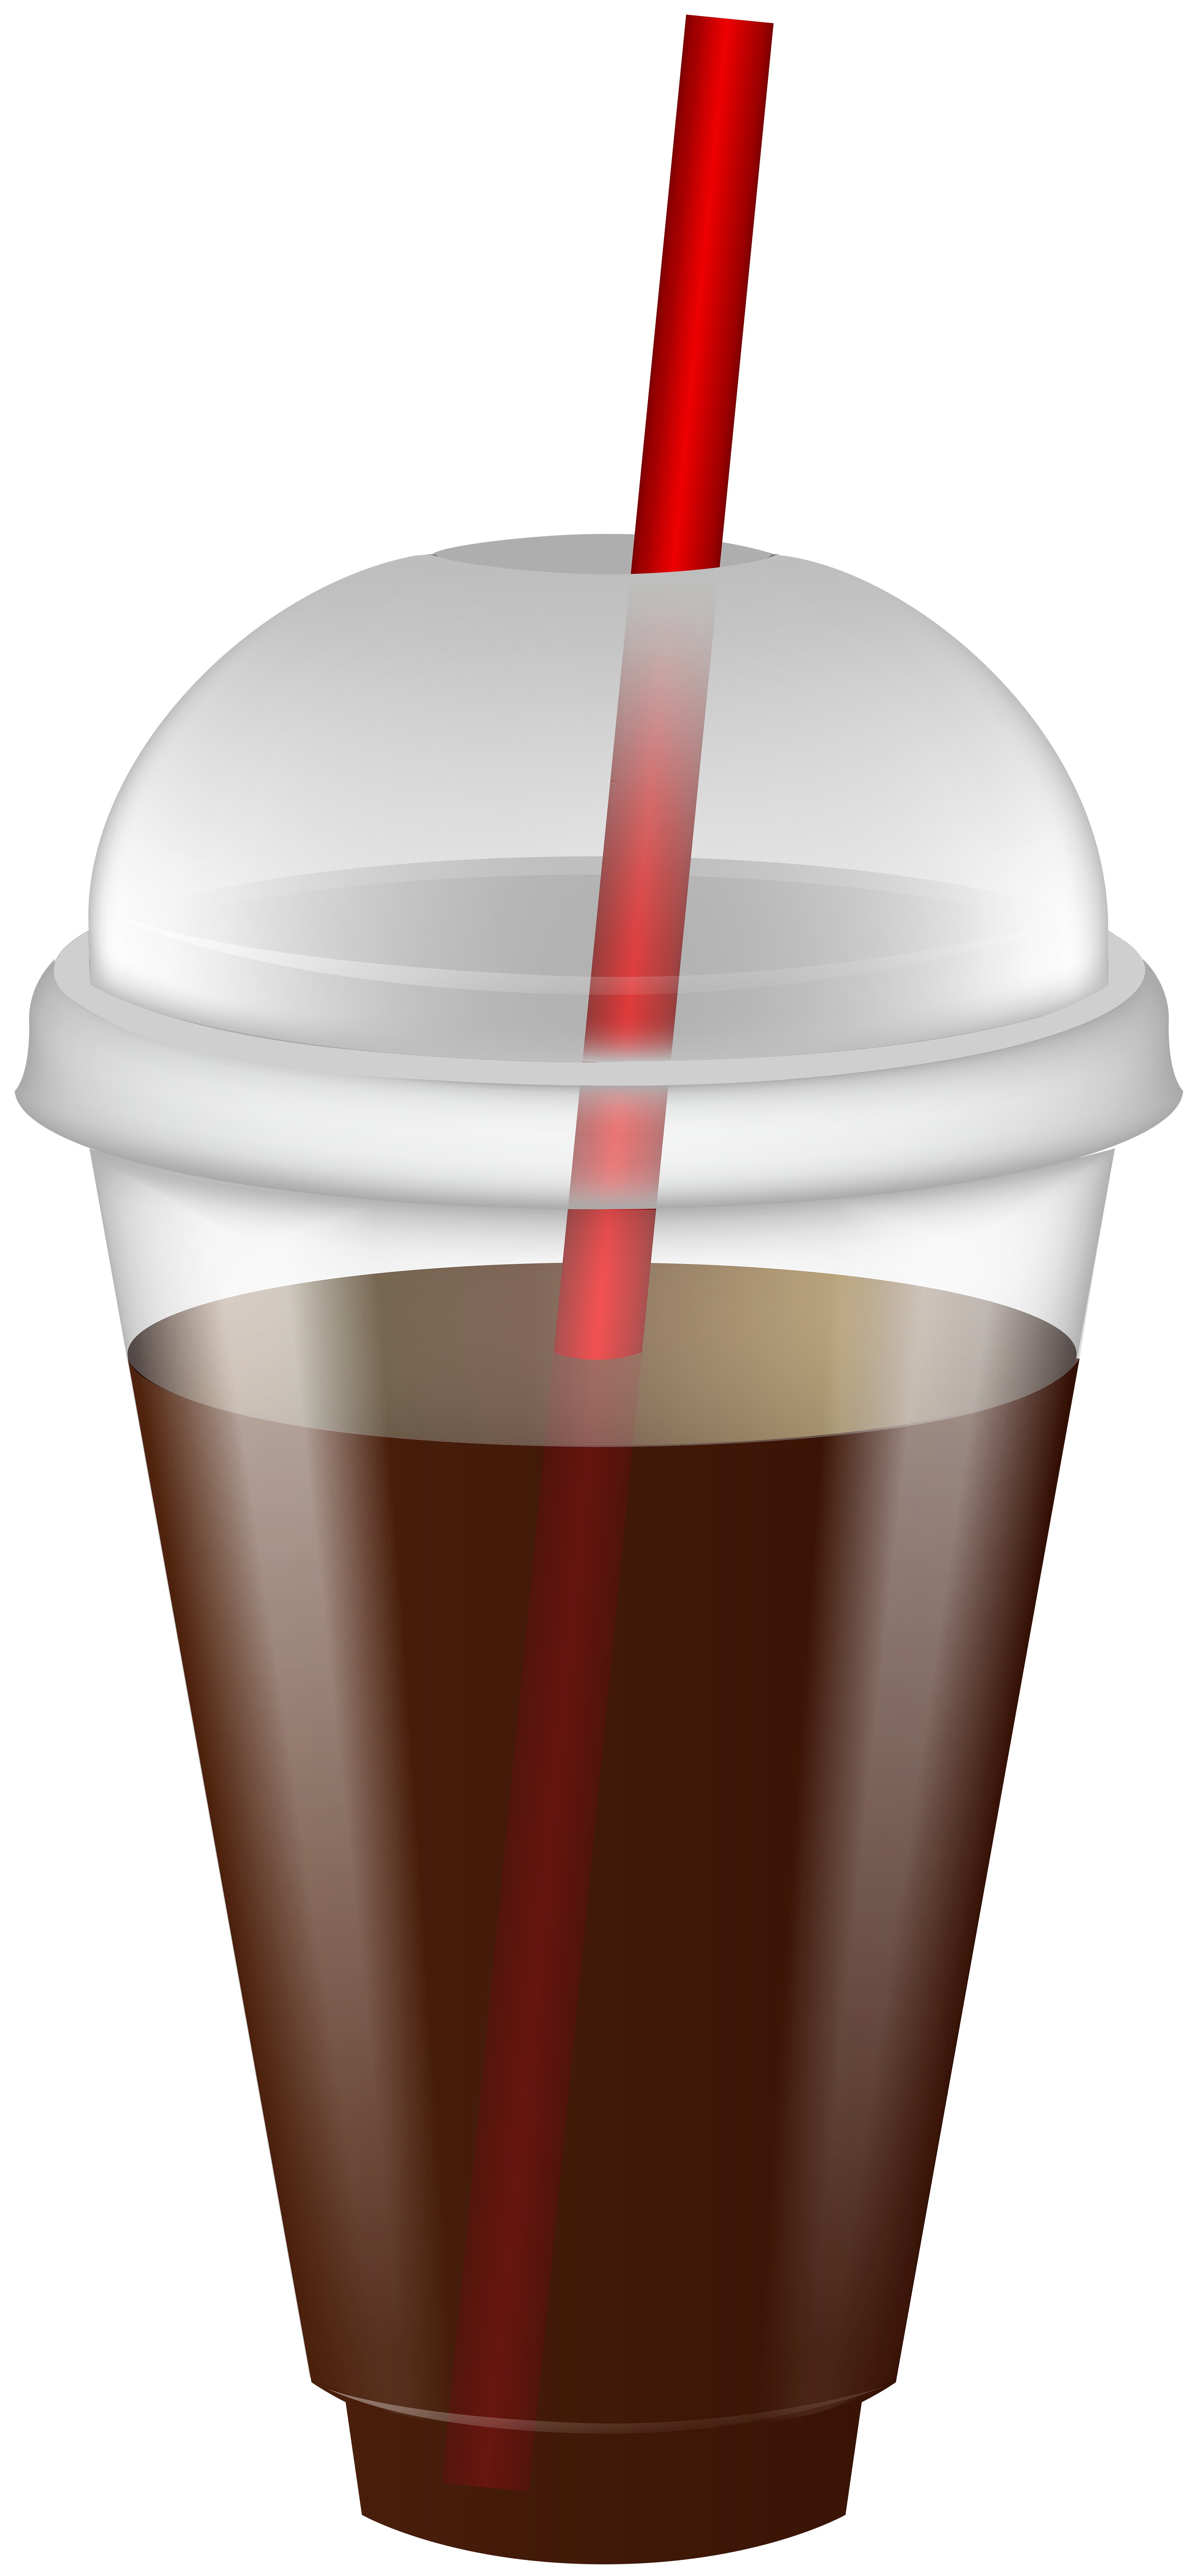 Plastic cup lid and straw clipart png transparent freeuse download Drink in Plastic Cup with Straw PNG Clip Art Image ... freeuse download